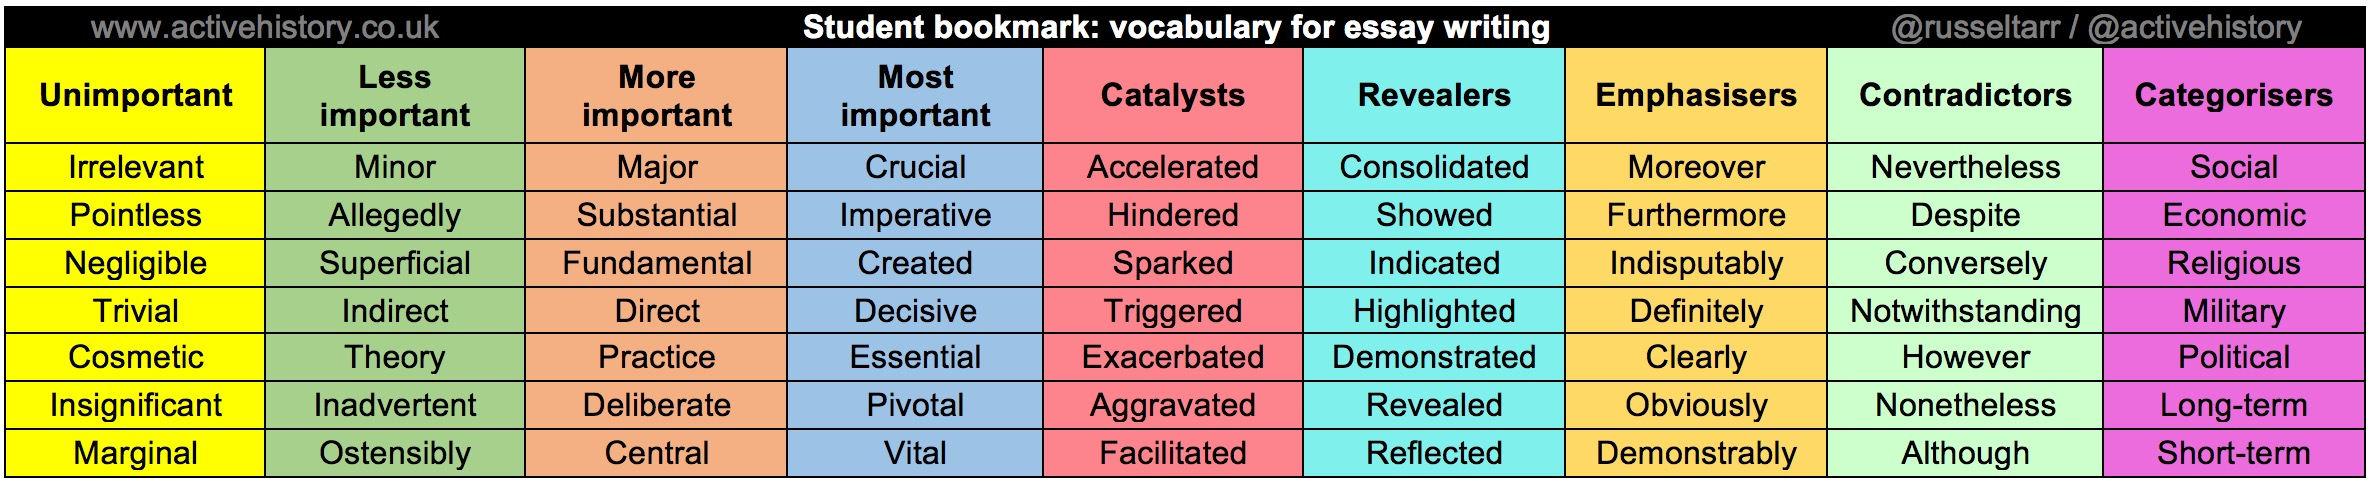 student bookmark vocabulary for essay writing tarr s toolbox i have designed the following bookmark in order to help students use a richer range of vocabulary to express their ideas more clearly in essays